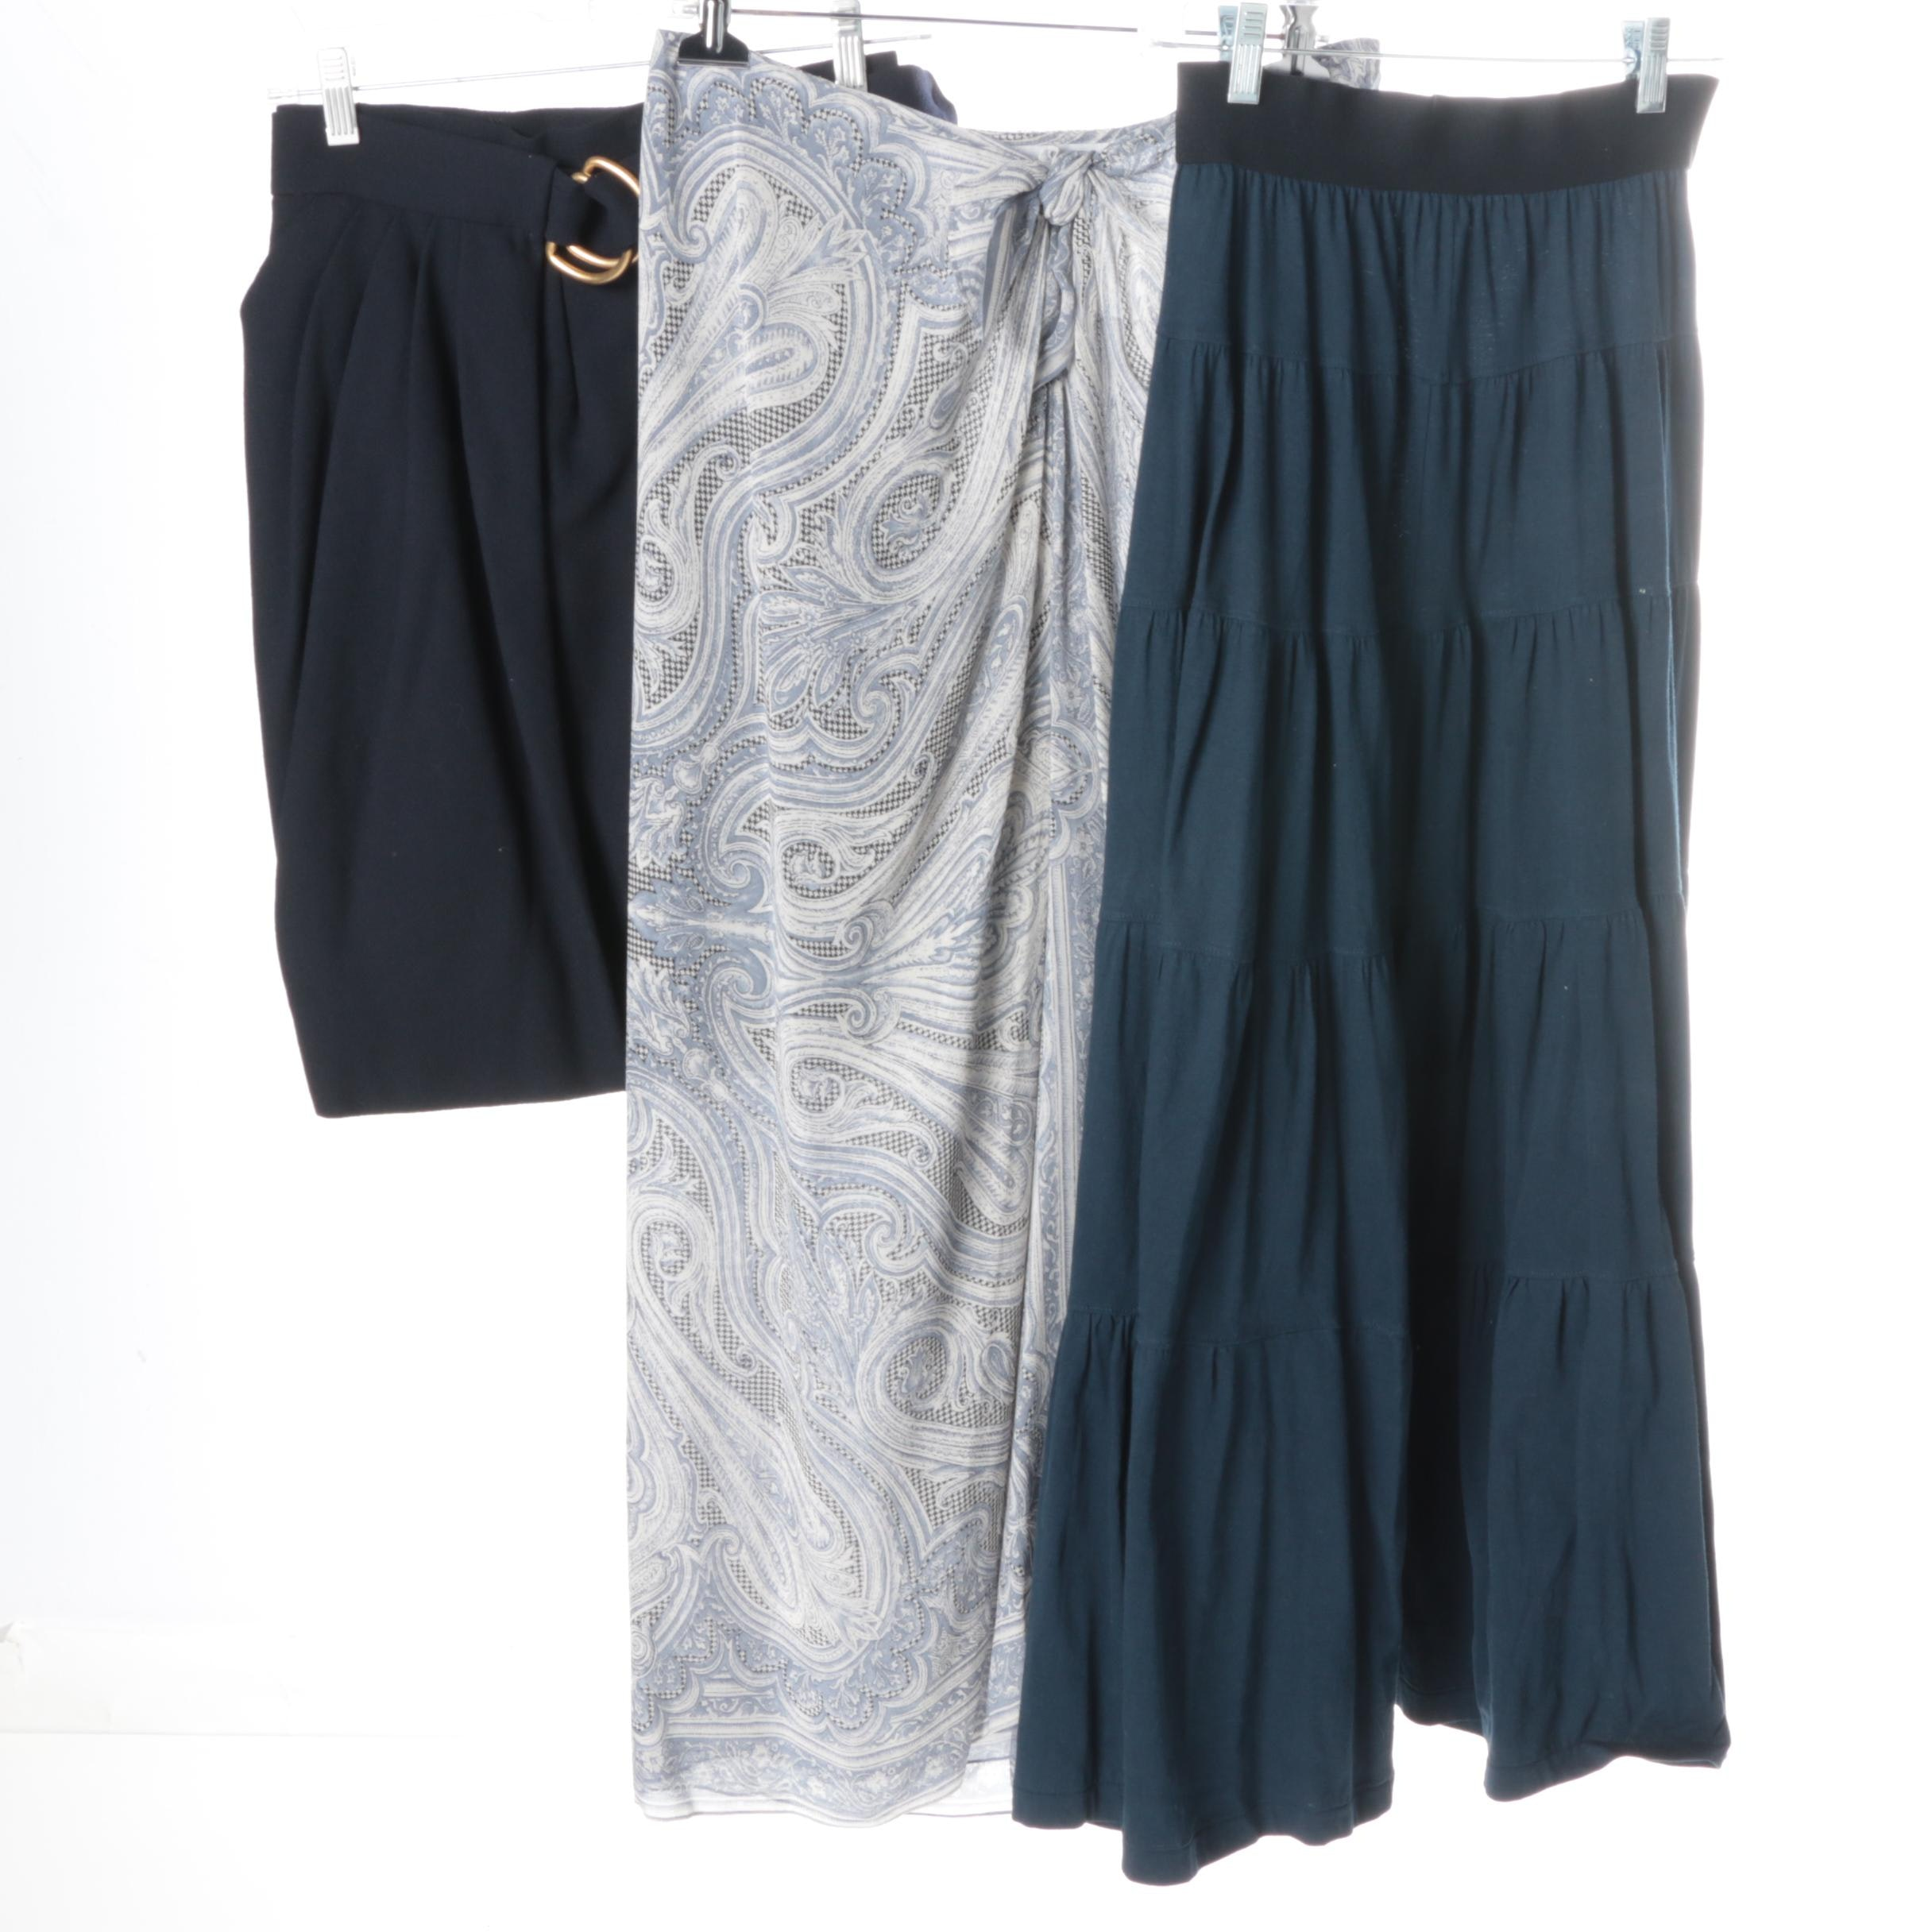 Skirts Including Anne Klein and Emanuel Ungaro